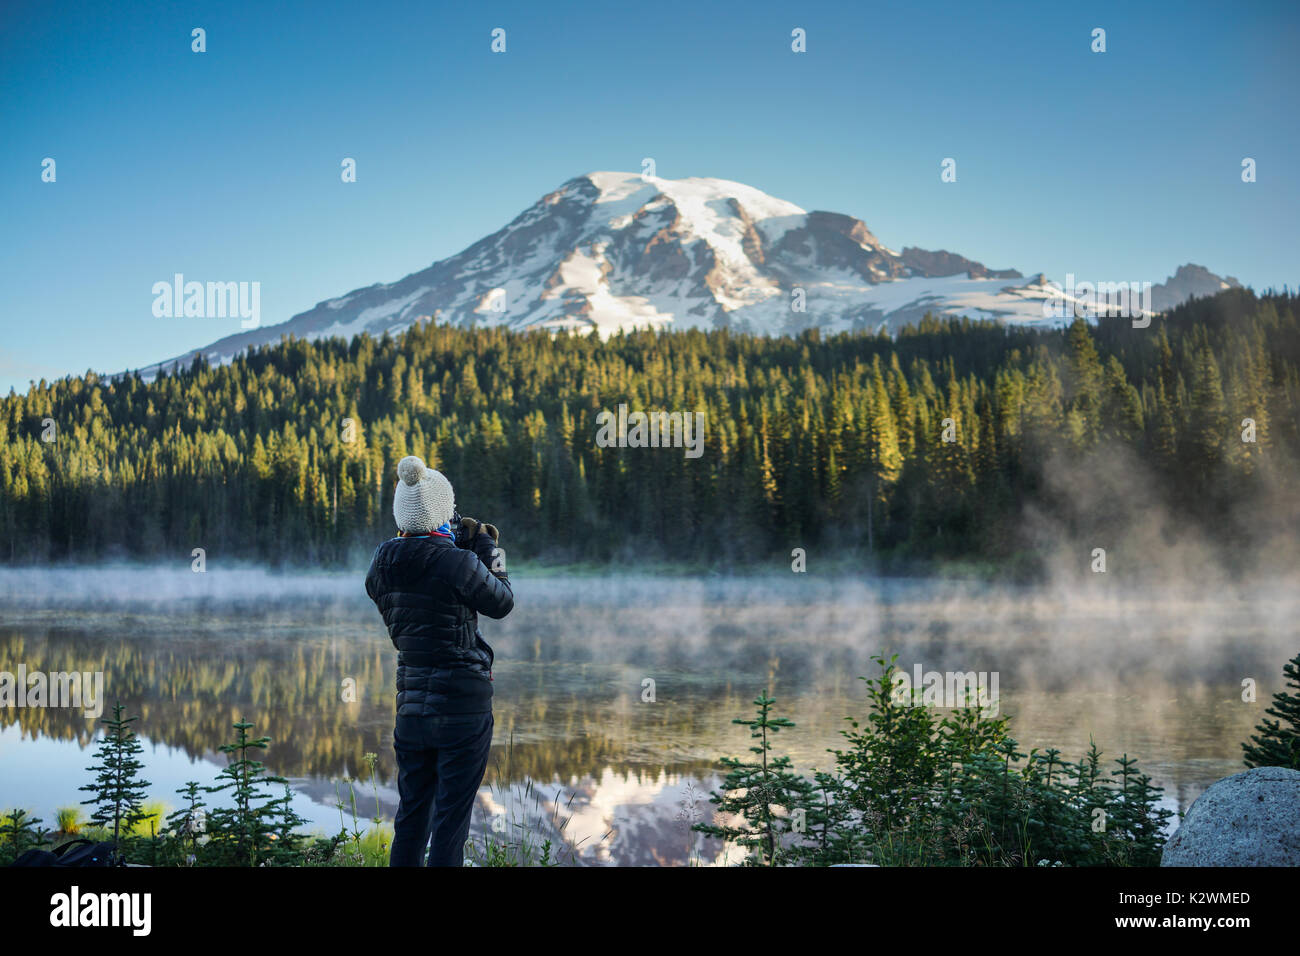 mount rainier women Womens spa packages specials choose from one of 3 women's spa choose from 5 private romantic luxury cabins with hot tubs and gas fireplaces at mt rainier.